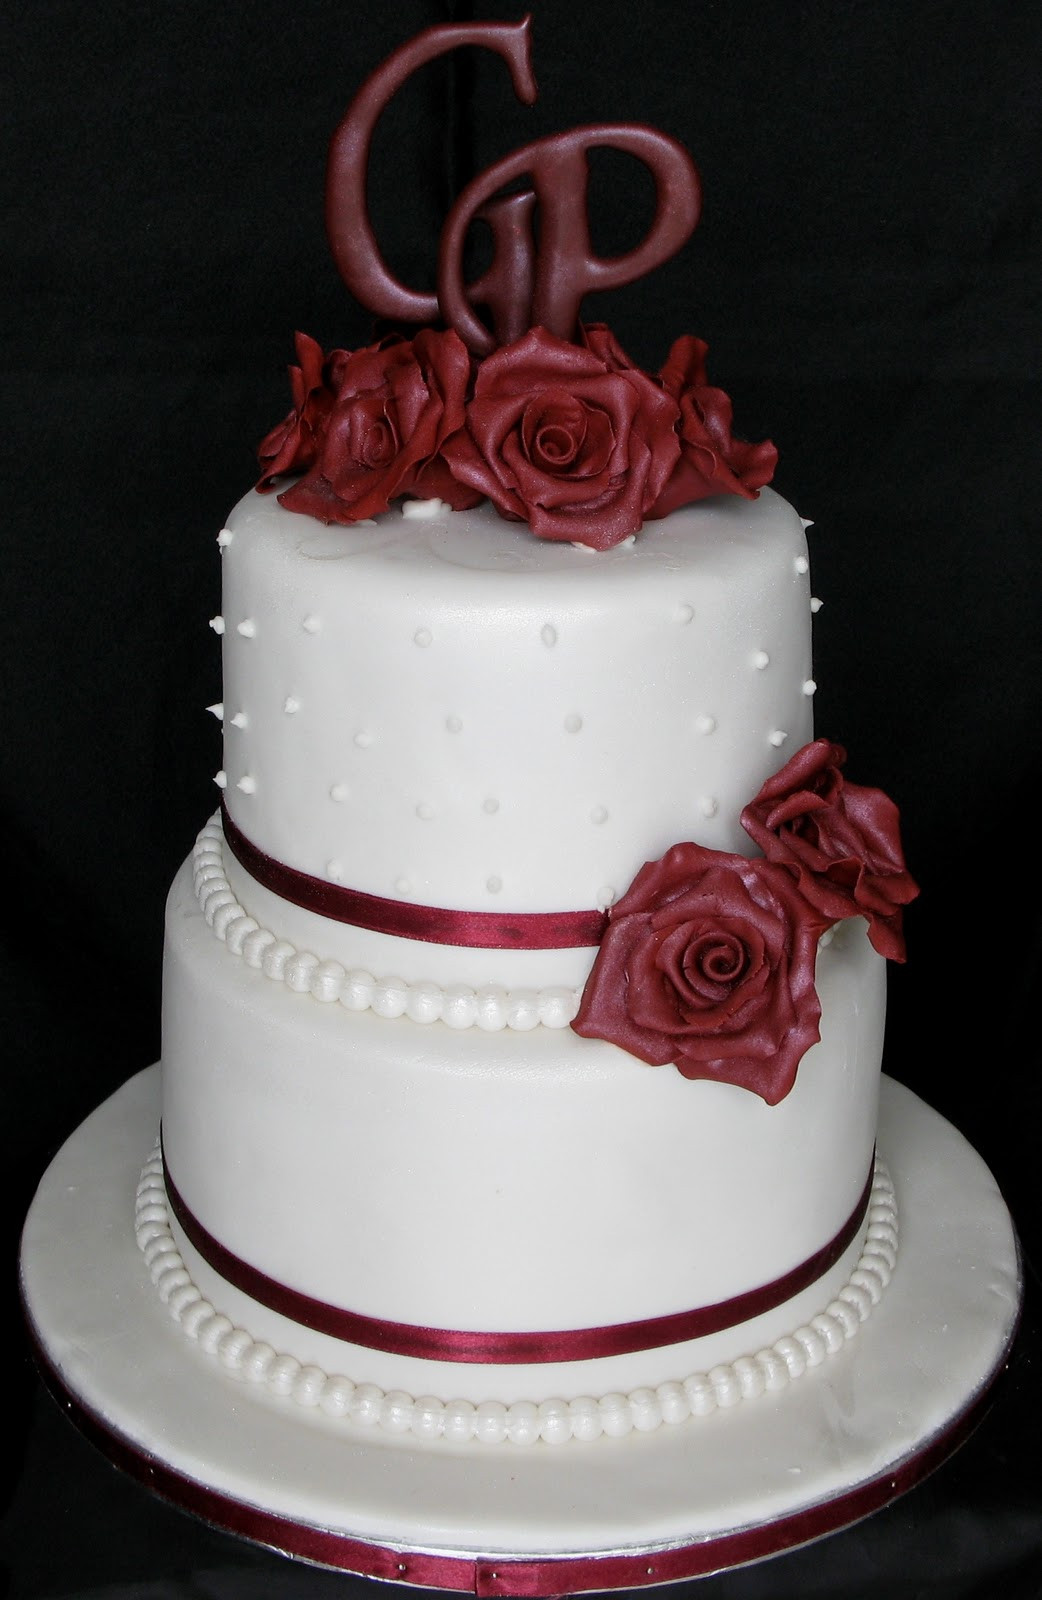 Two Layered Wedding Cakes  Sugarcraft by Soni Two Layer Wedding Cake with Roses